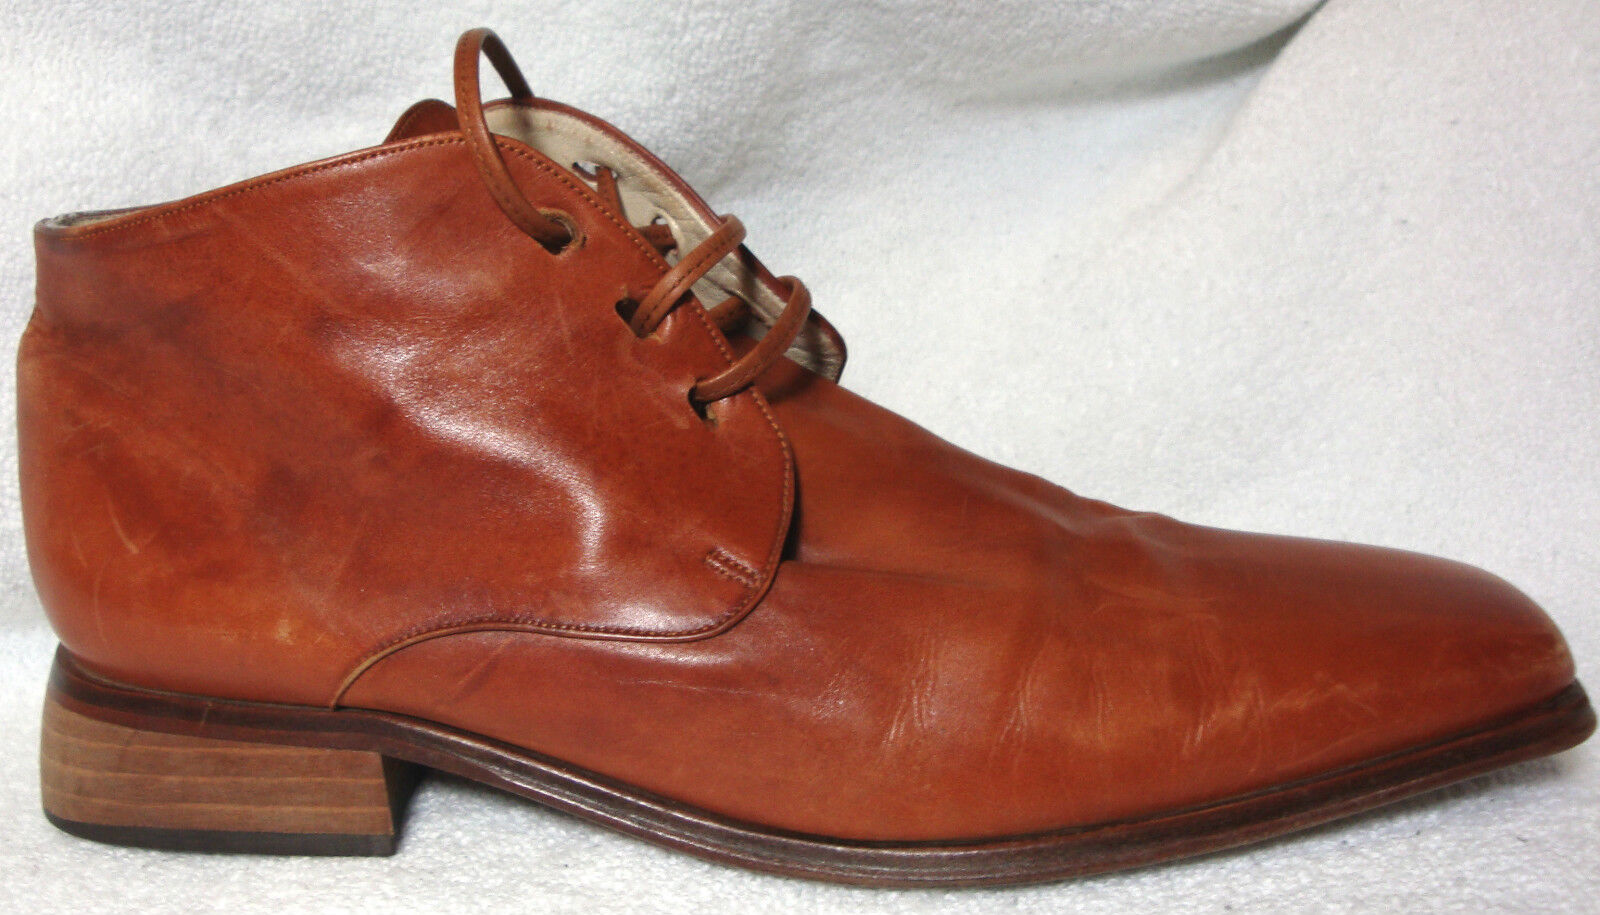 U3 U3 U3 Solid Brown Leather Lace-Up Ankle Boots Booties Low Heel - 39 M 3206b0